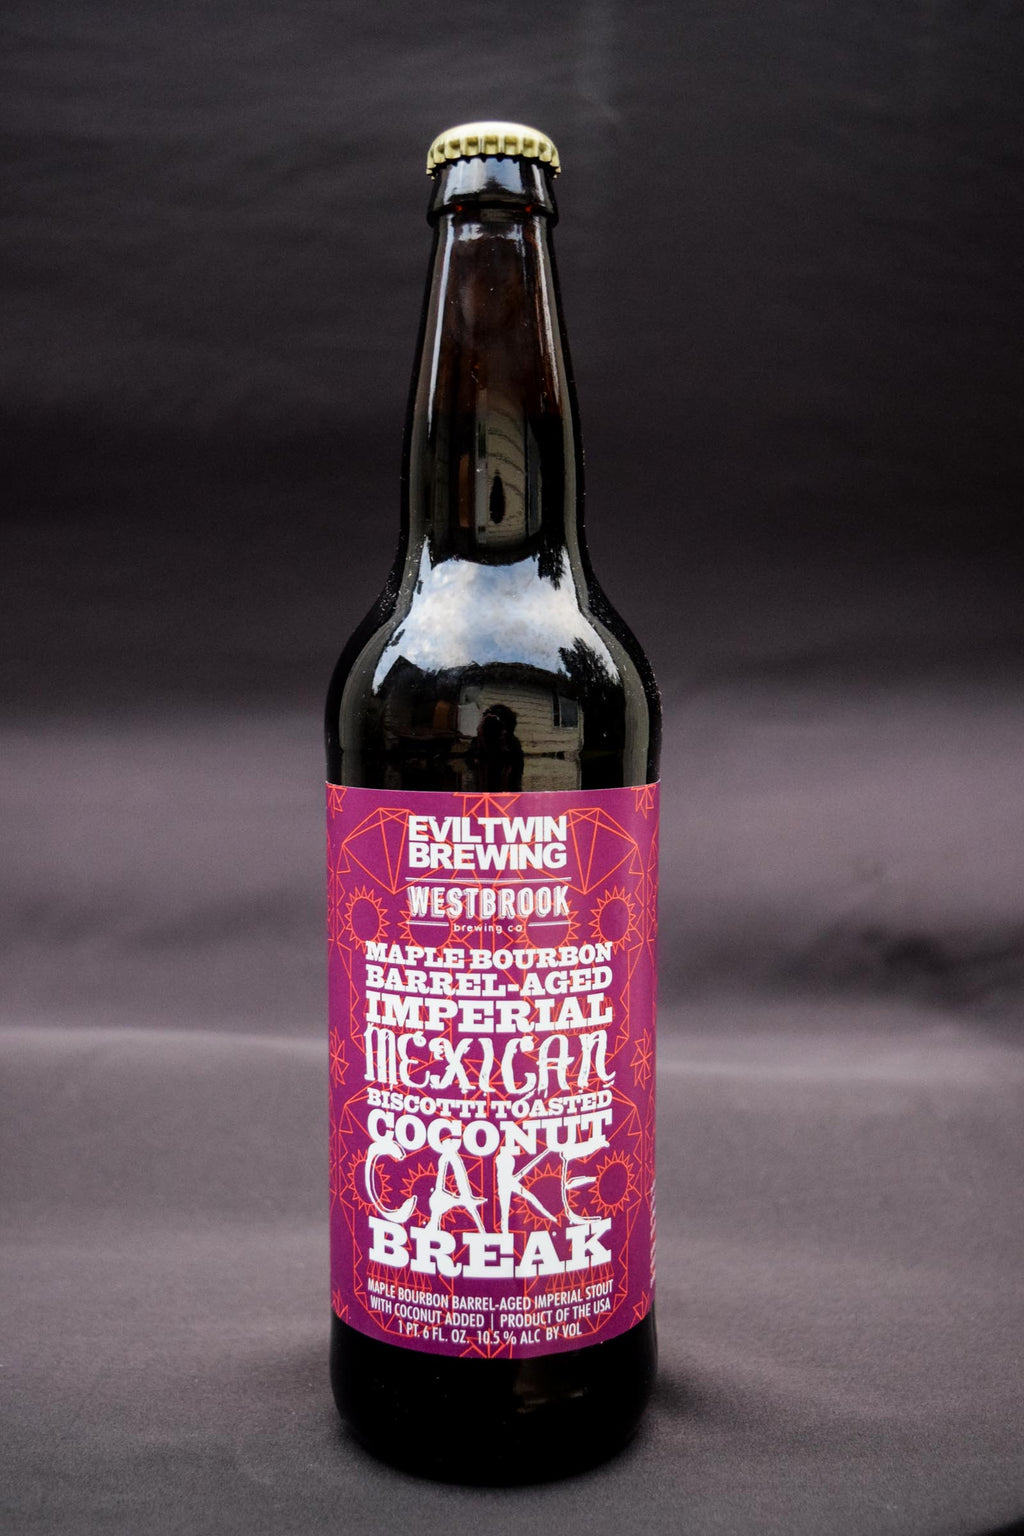 Buy Evil Twin Maple Bourbon Barrel-Aged Imperial Mexican Biscotti Toasted Coconut Cake Break Online